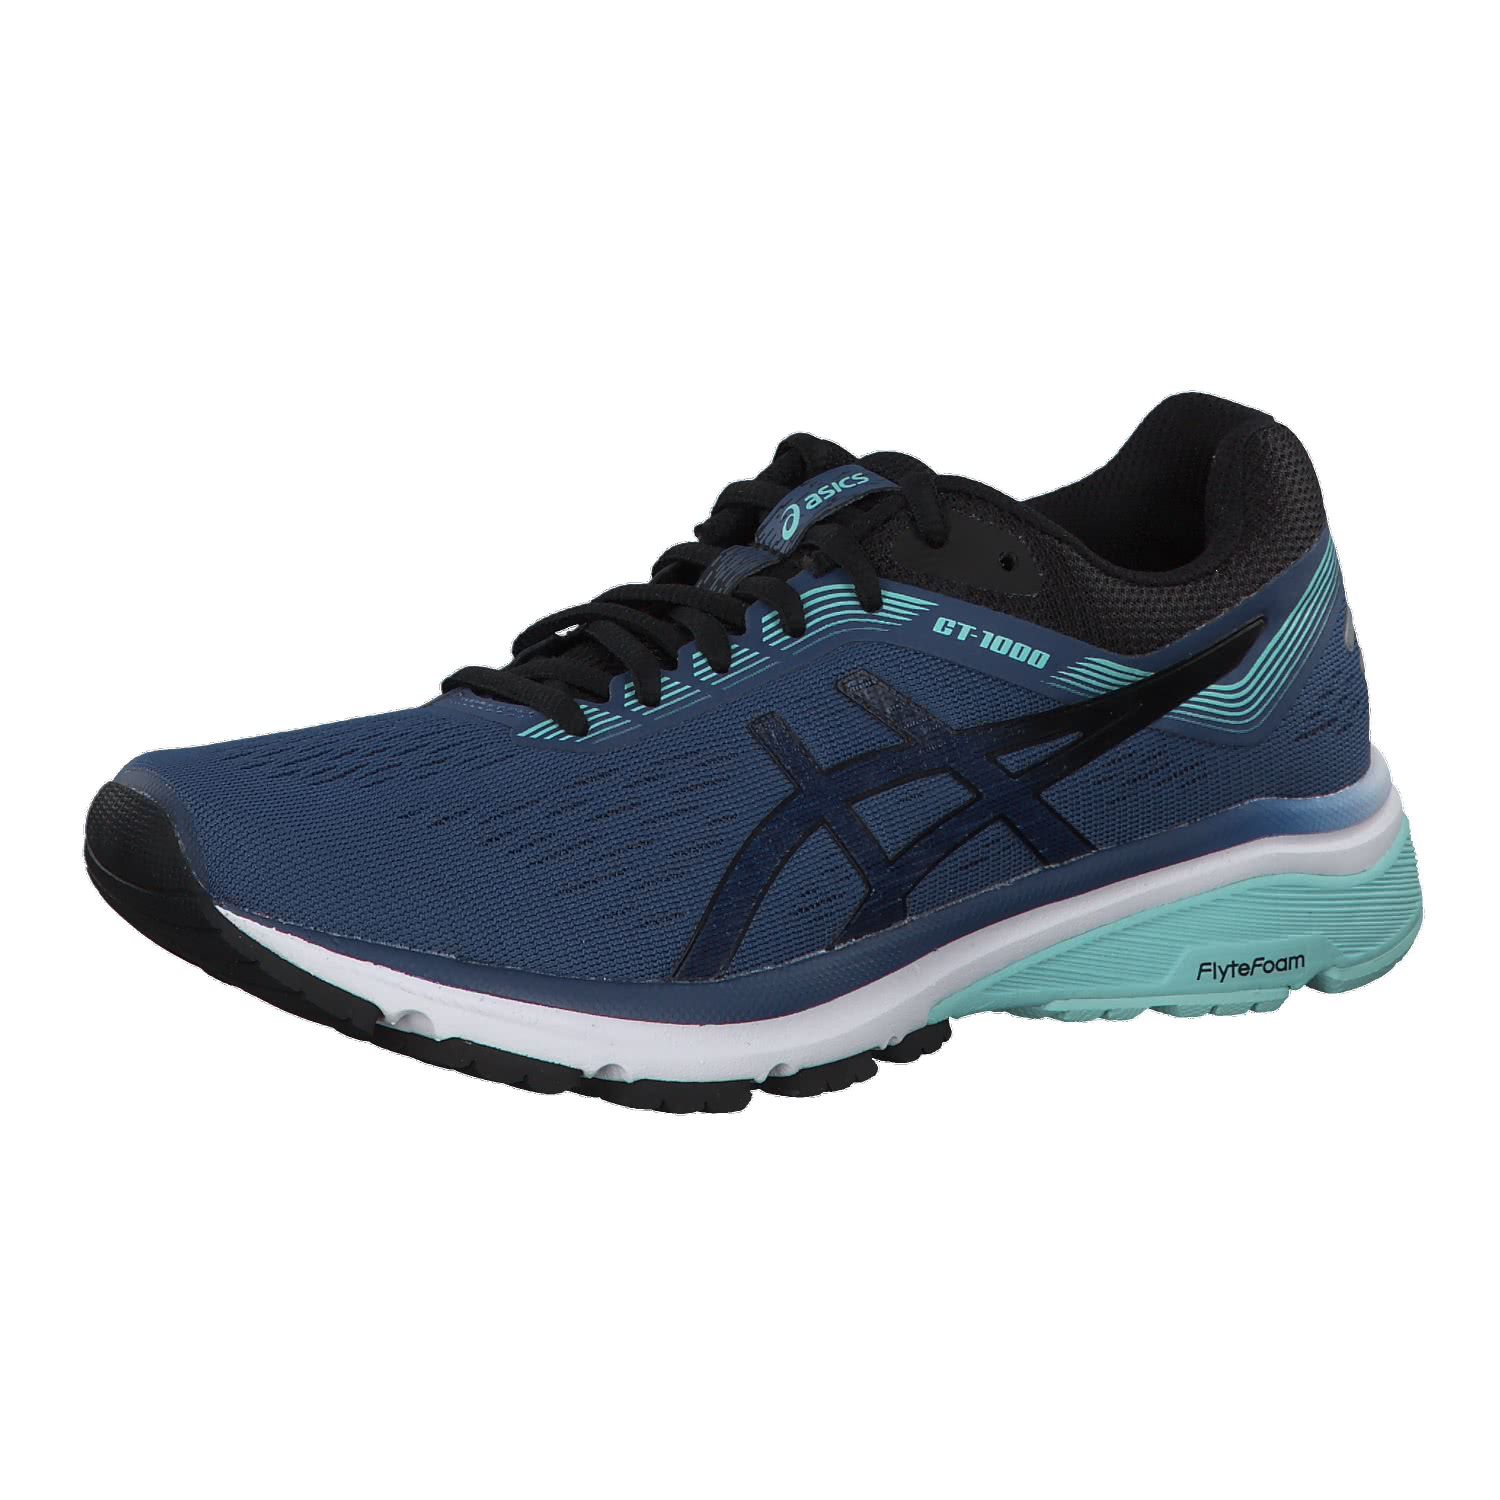 Asics Damen Laufschuhe GT-1000 7 1012A030-401 37.5 GRAND SHARK/BLACK ...